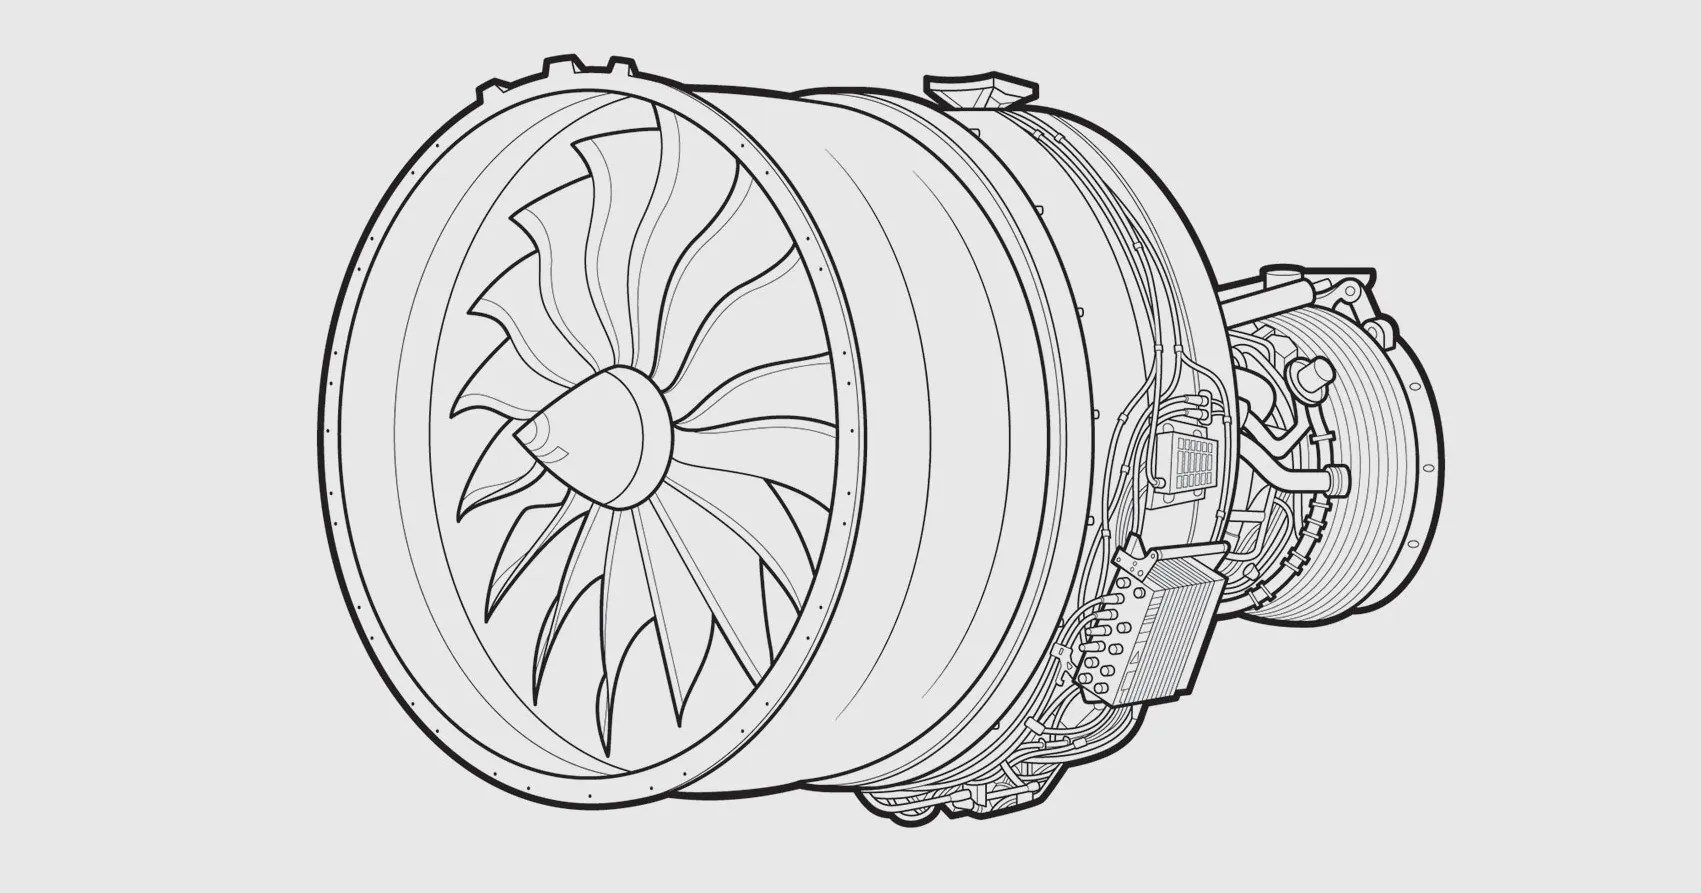 Boeing S New Ge9x Jet Engine Proves Bigger Is Better